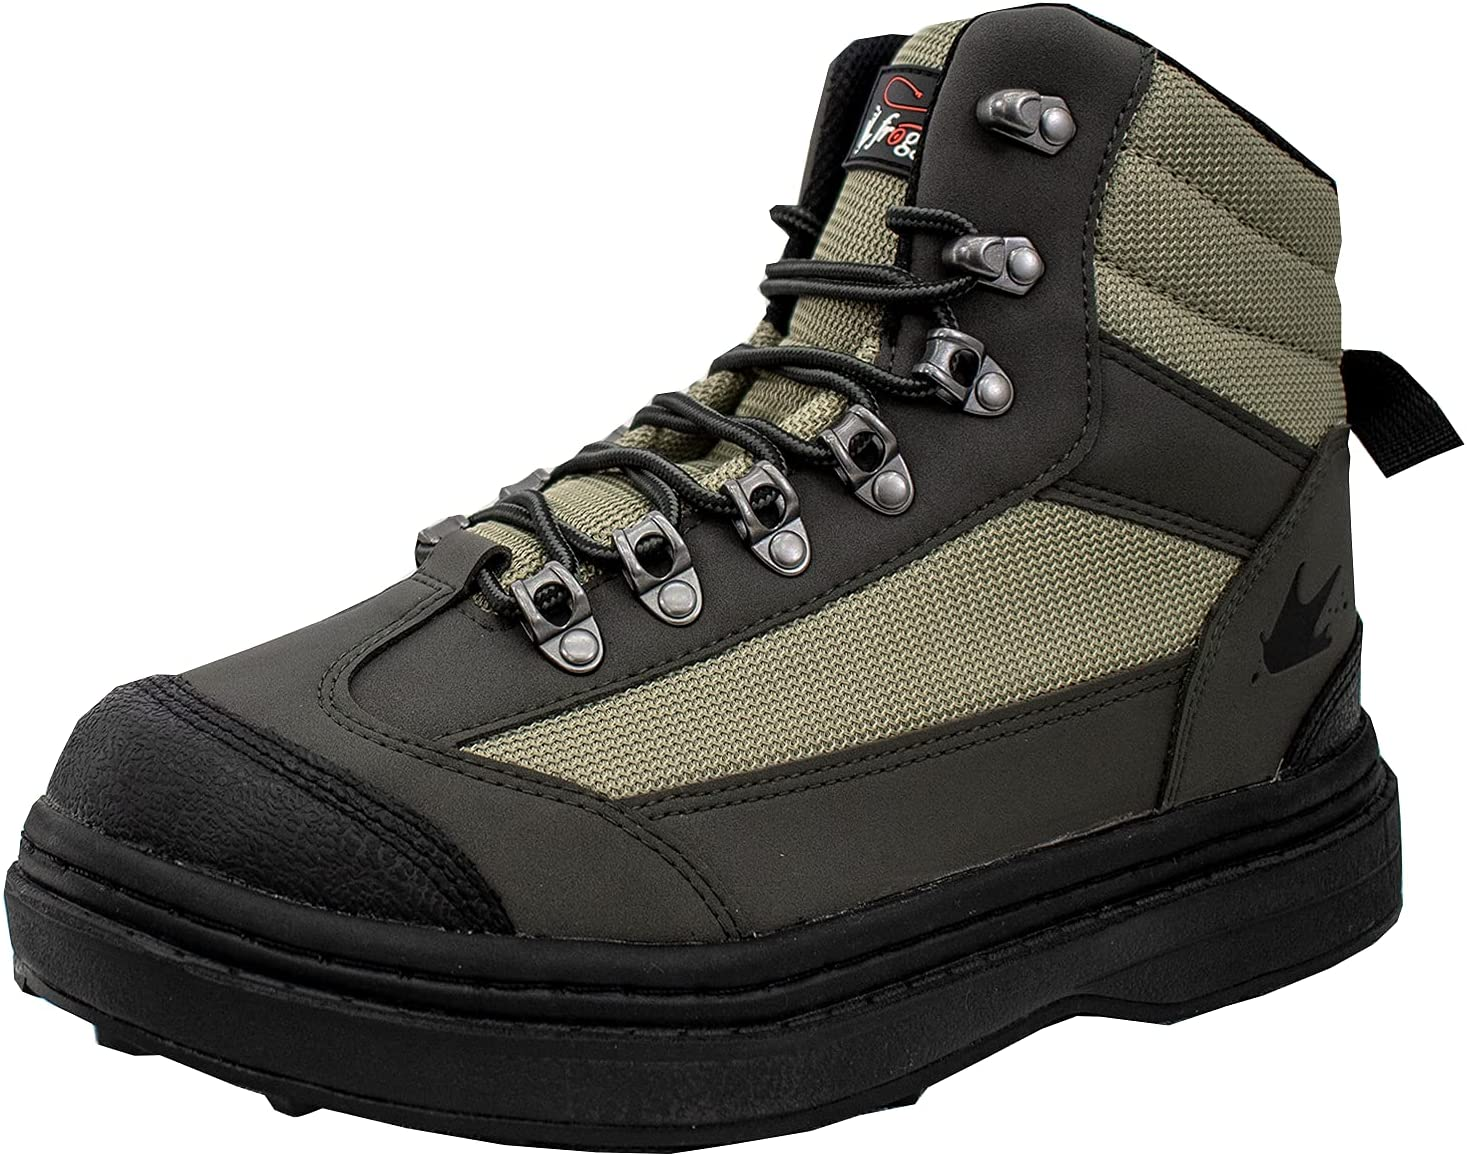 quality wading boots